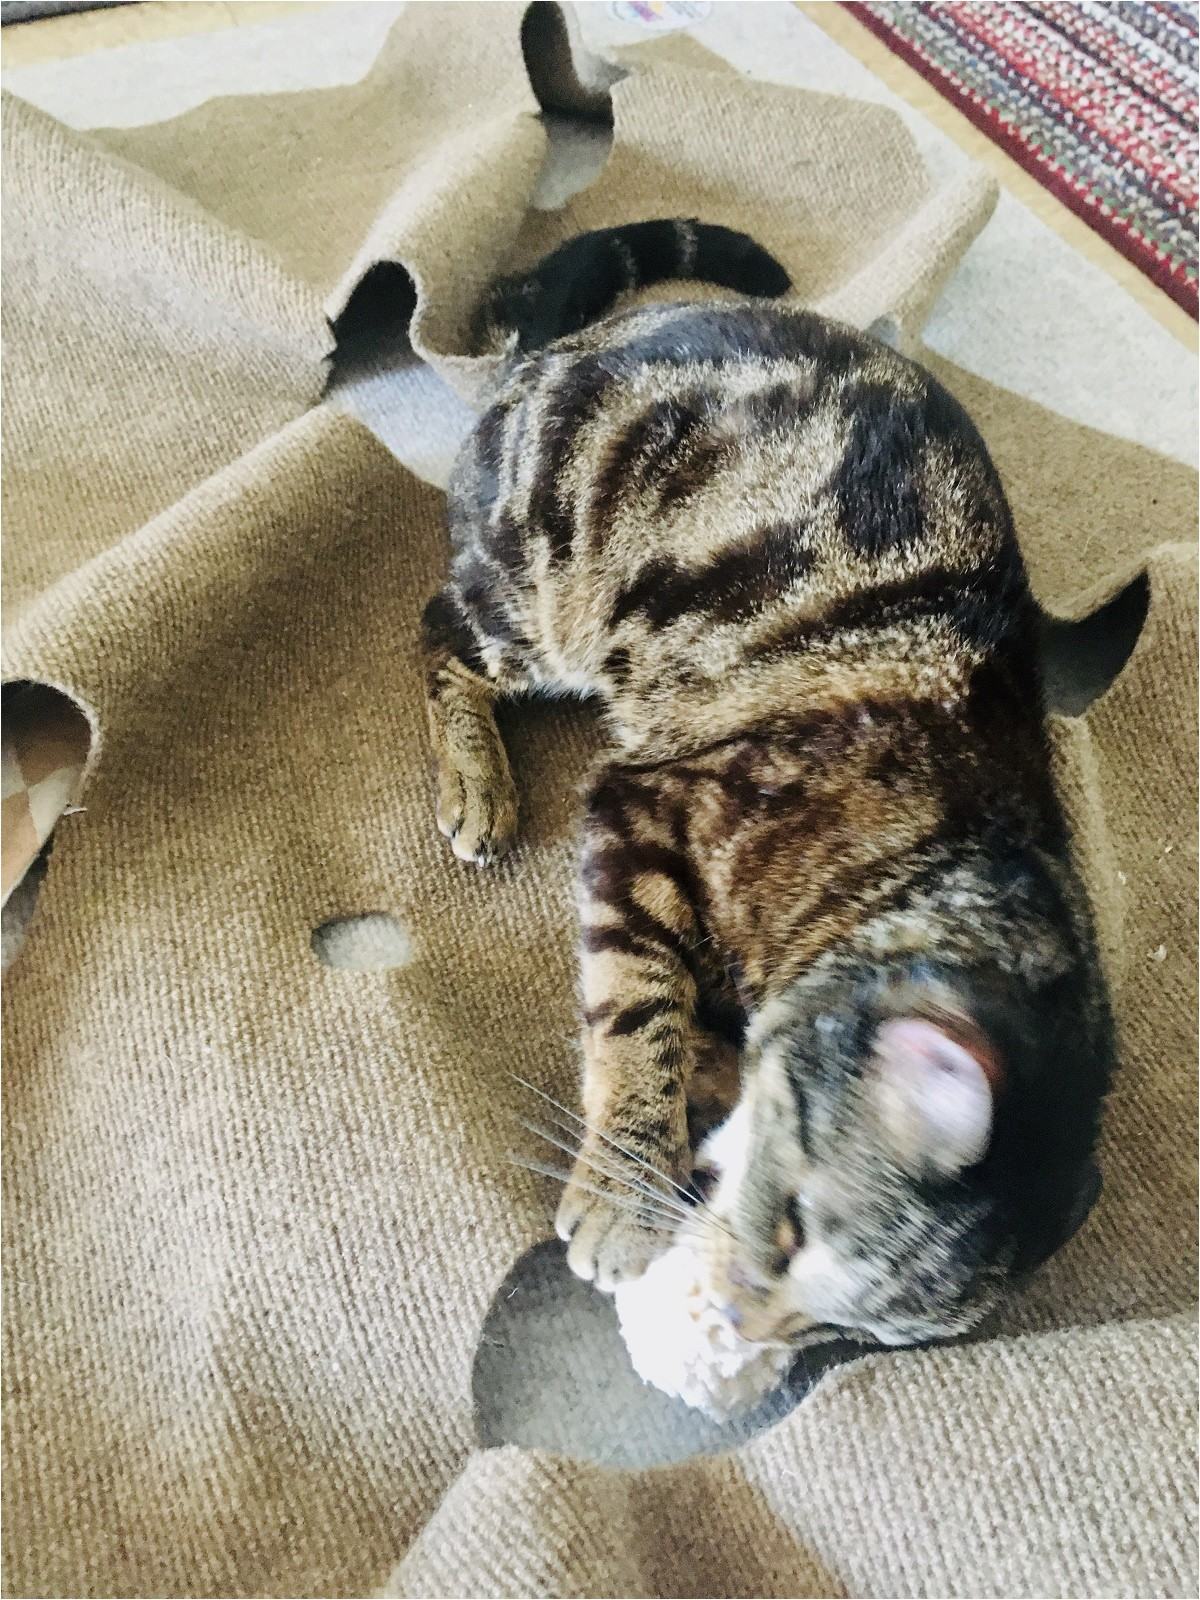 cat playing on ripple rug cotton ball toy caticles